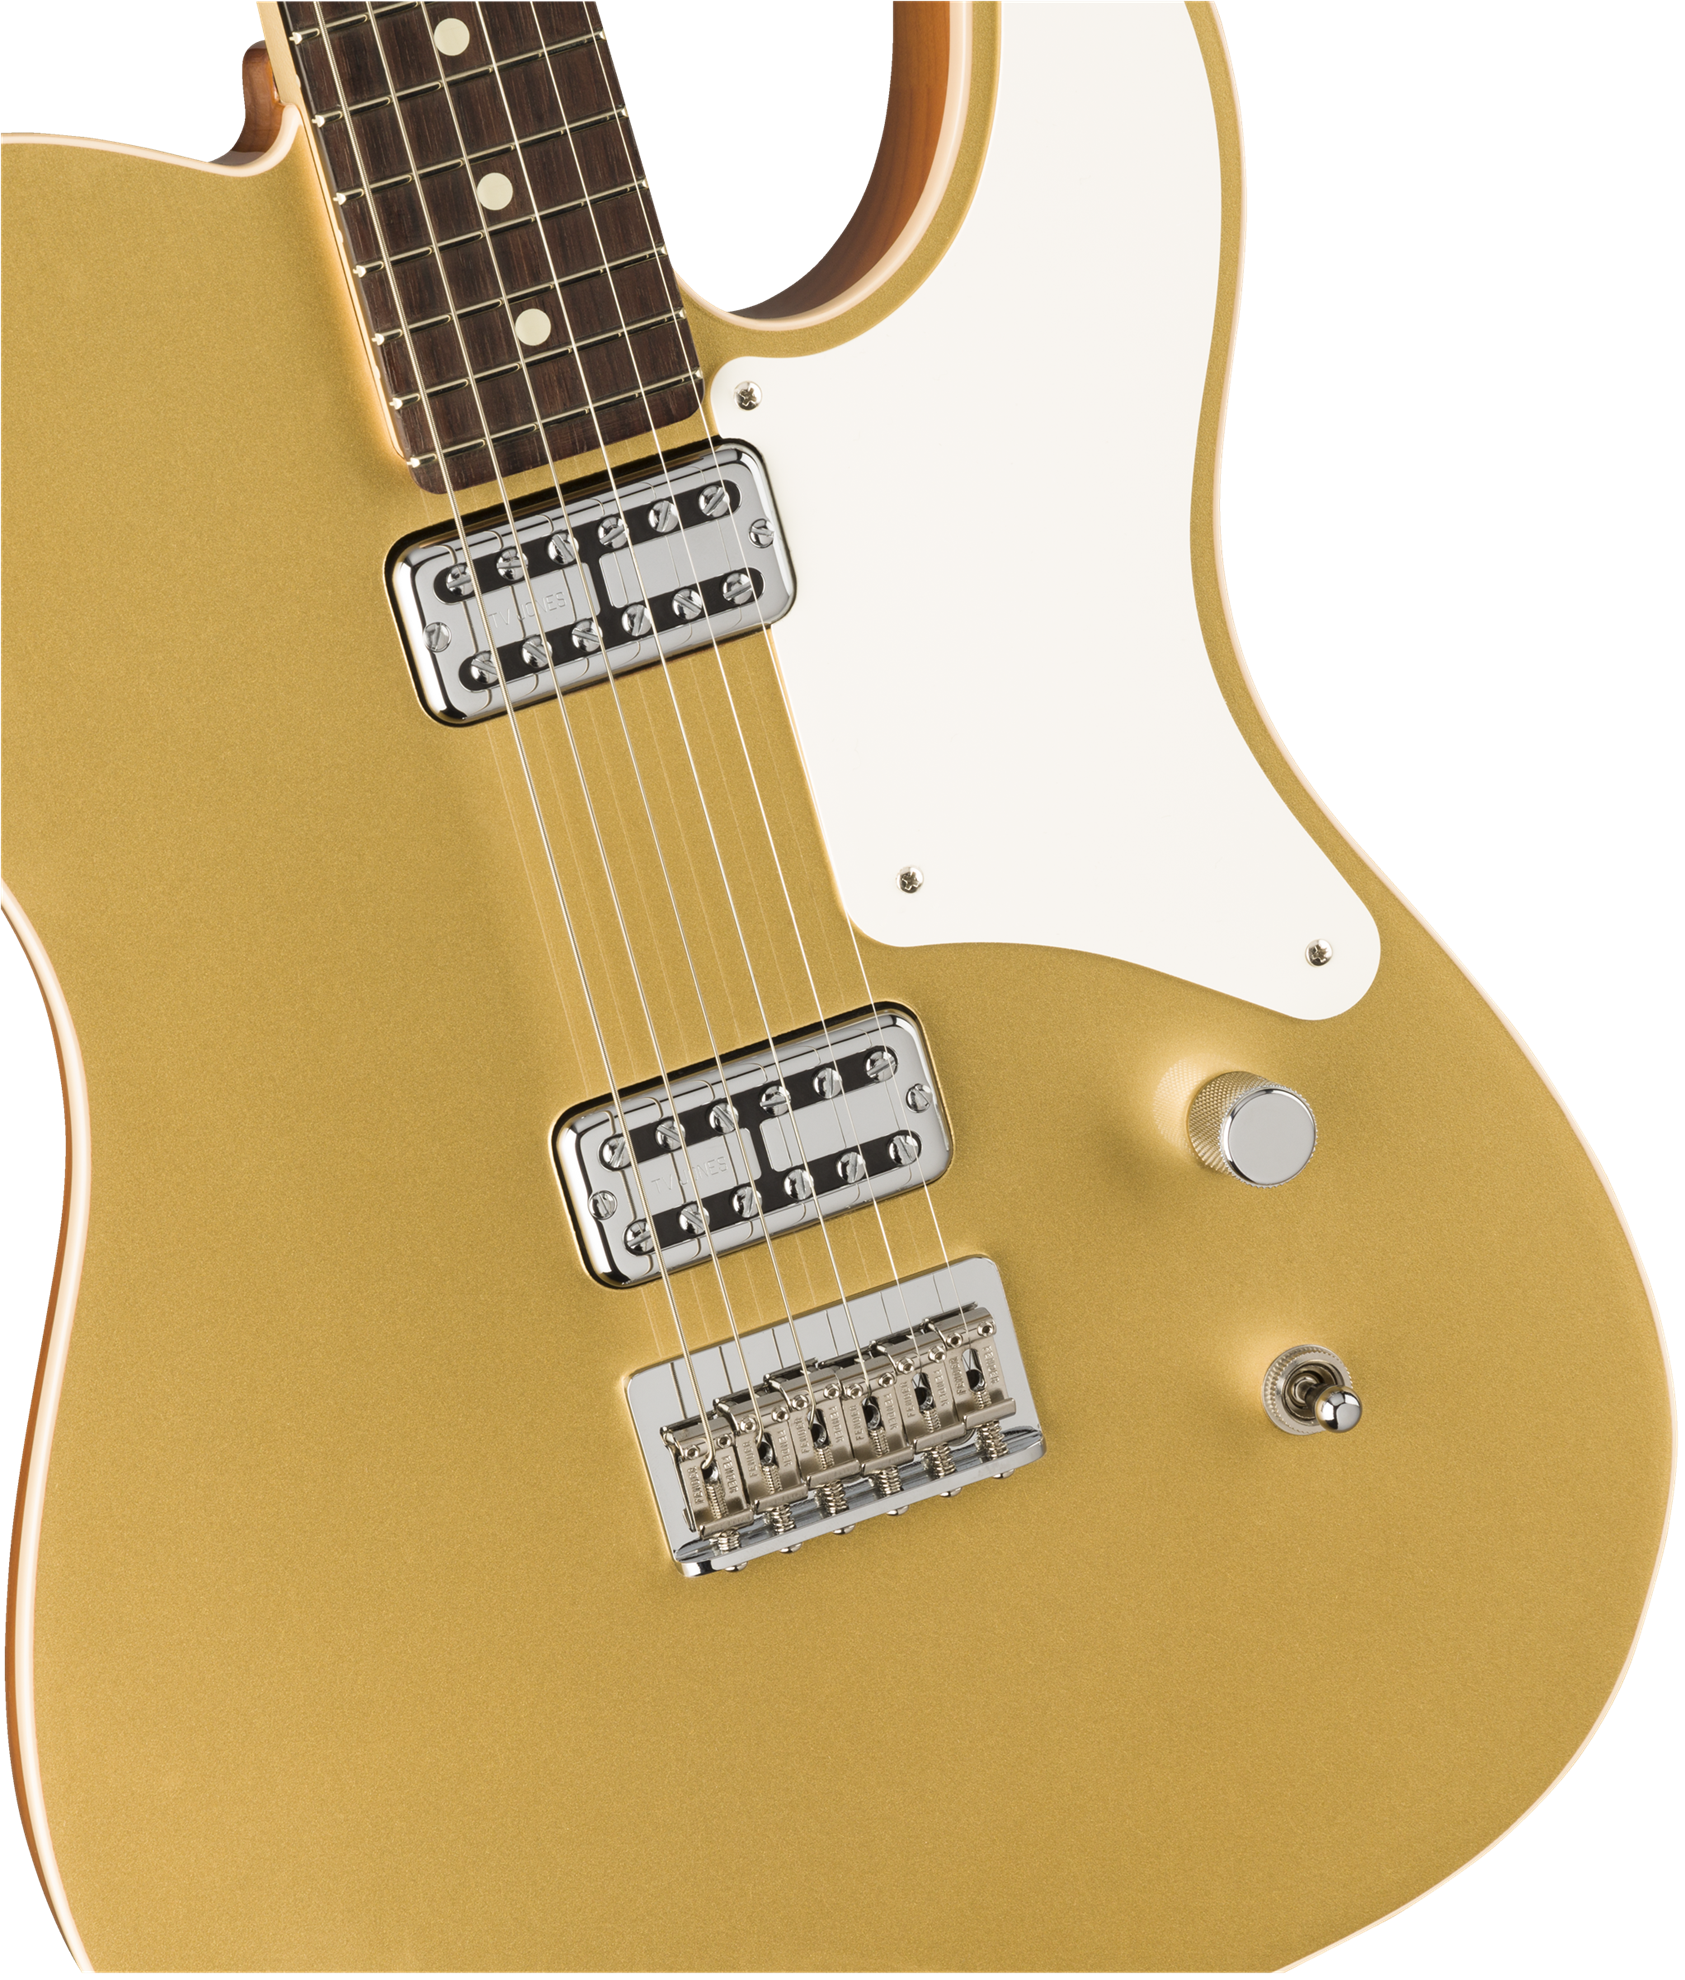 Fender Cabronita Telecaster Limited Edition Electric Guitar with Rosewood Fingerboard in Aztec Gold - Body